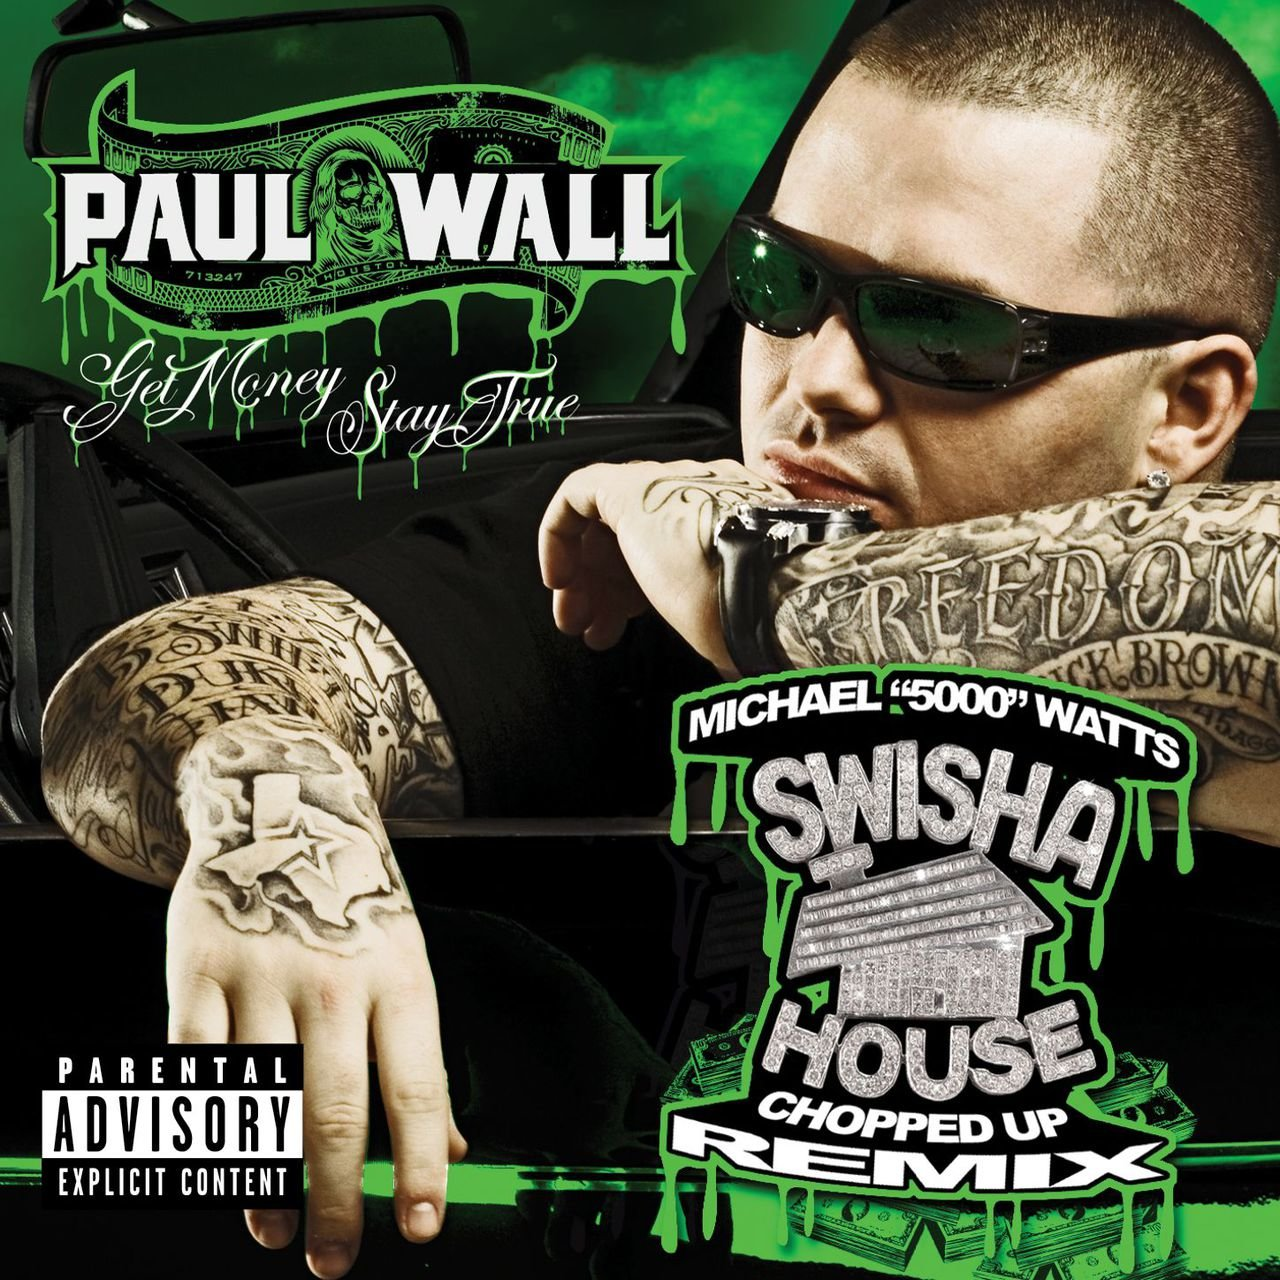 Get Money Stay True [SwishaHouse Chopped Up Remix]  (U.S. Version)